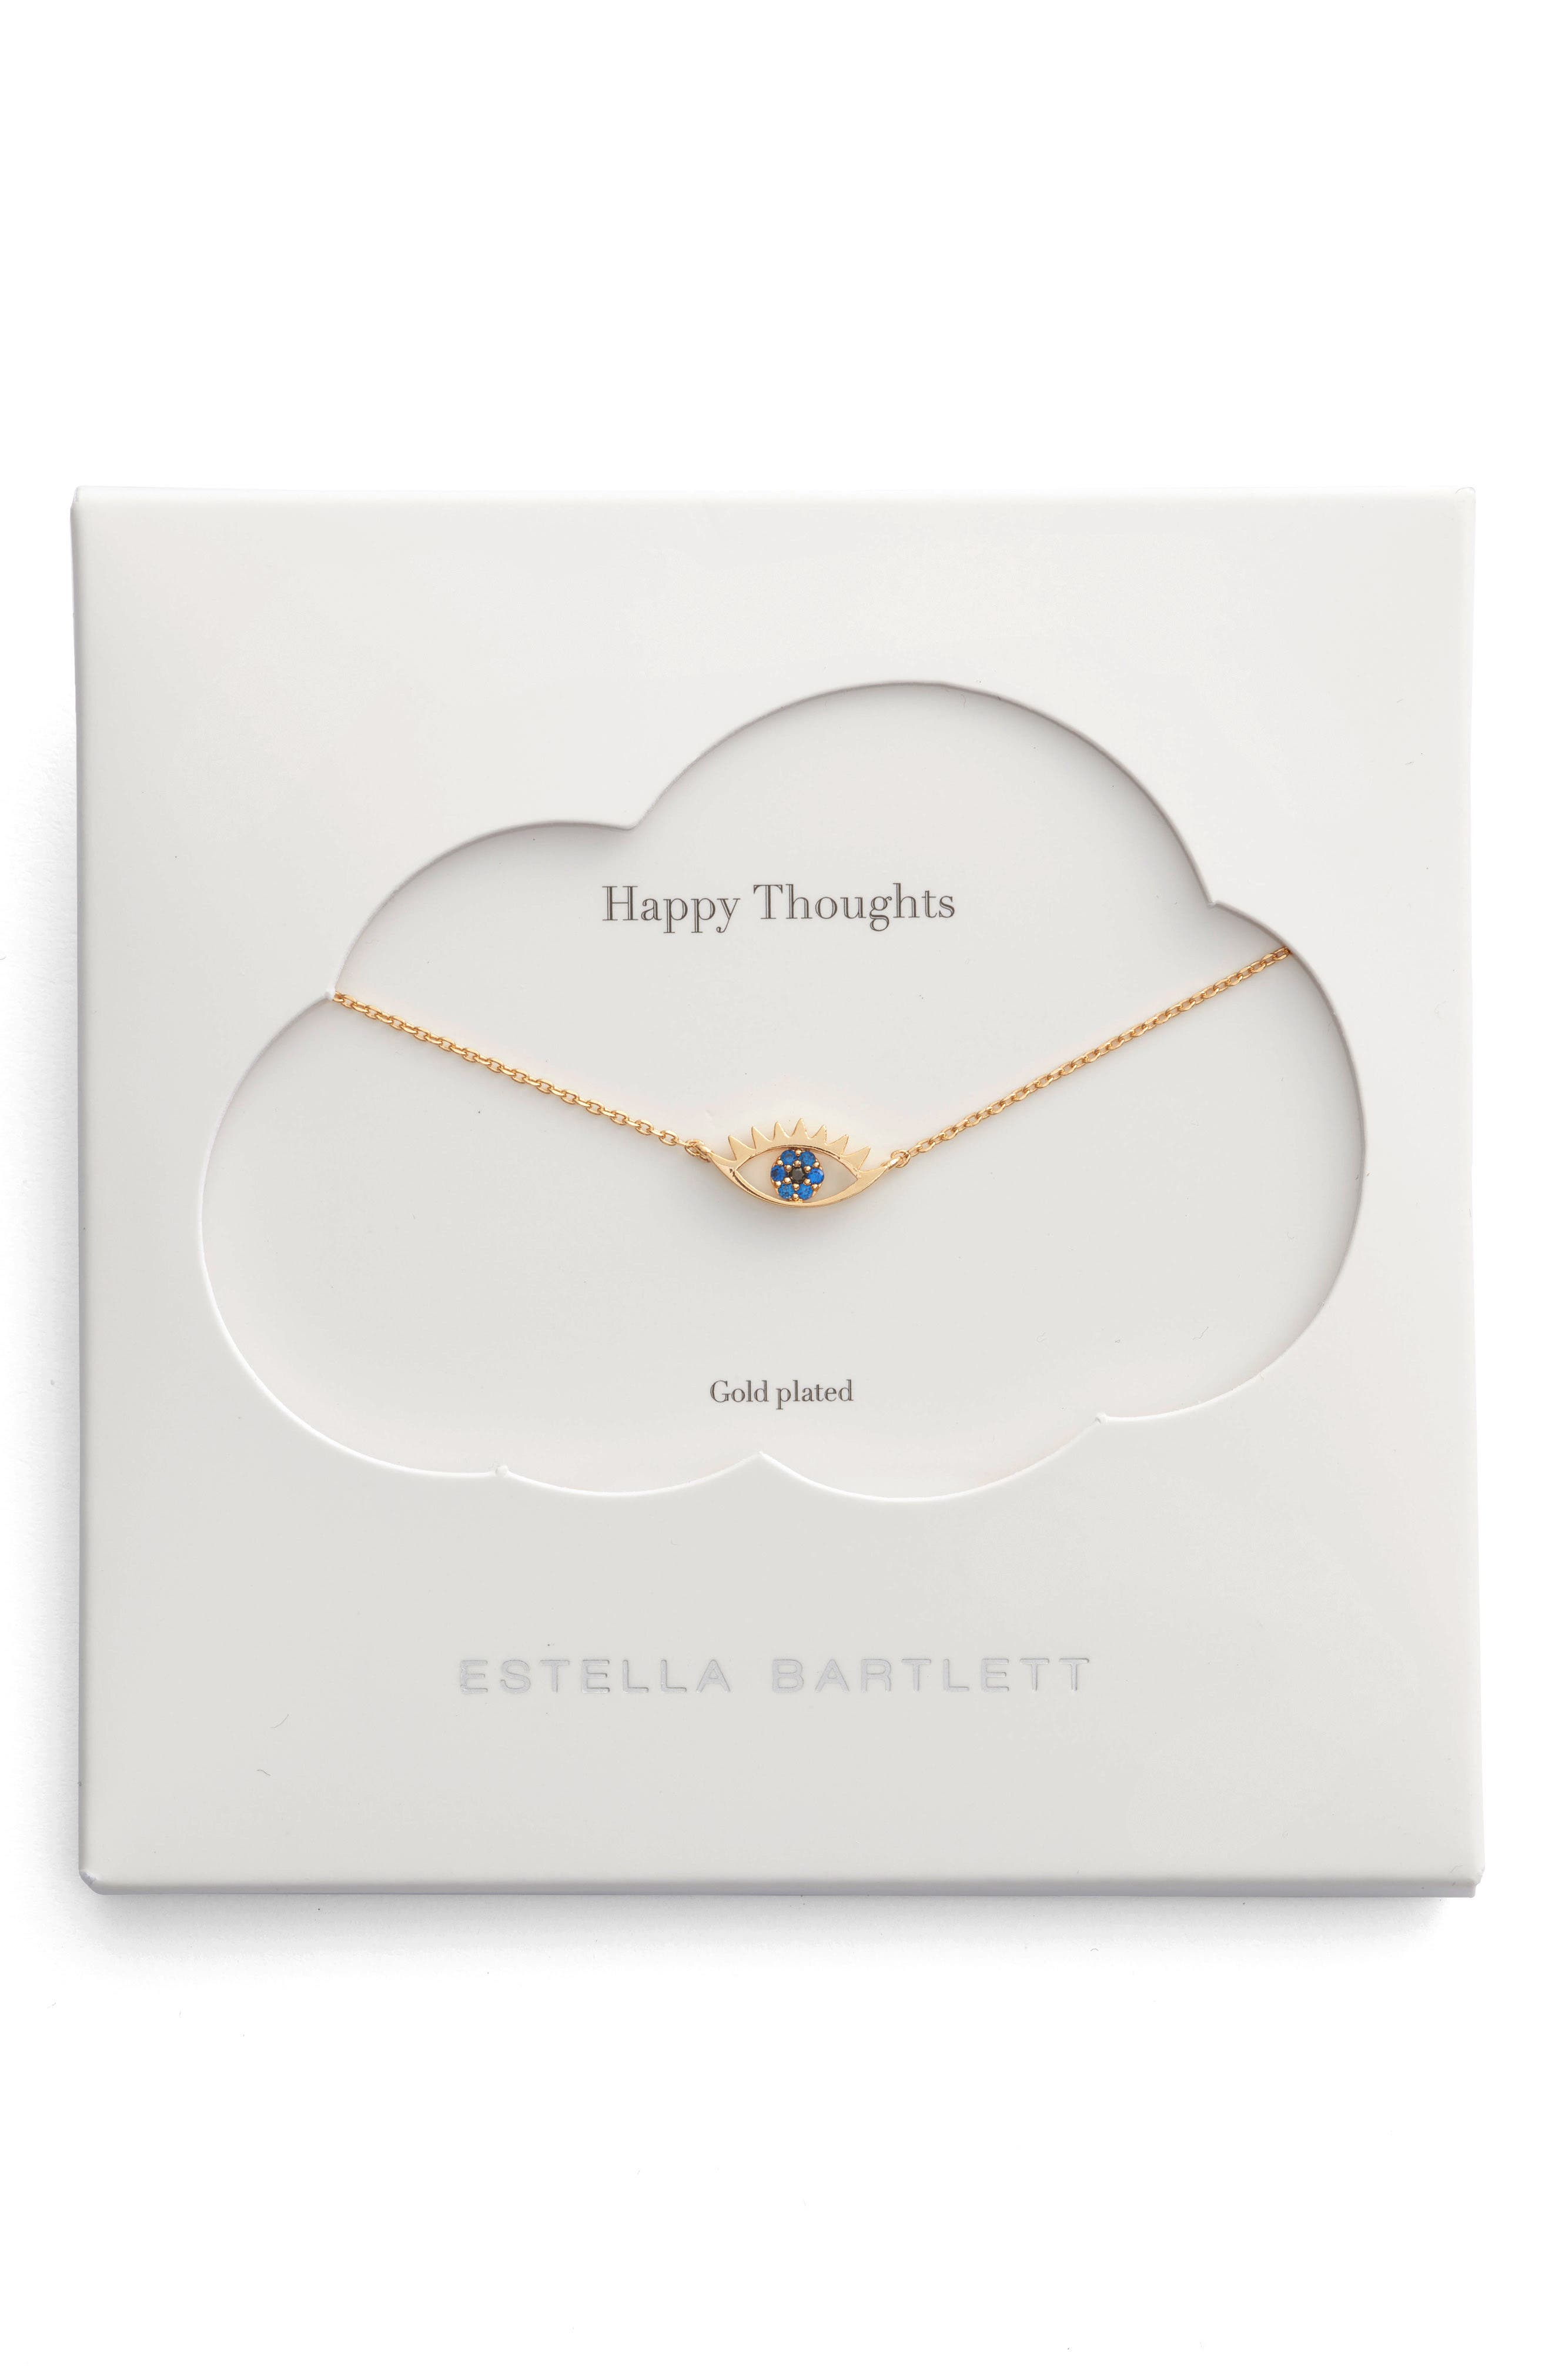 Happy Thoughts Eye Pendant Necklace